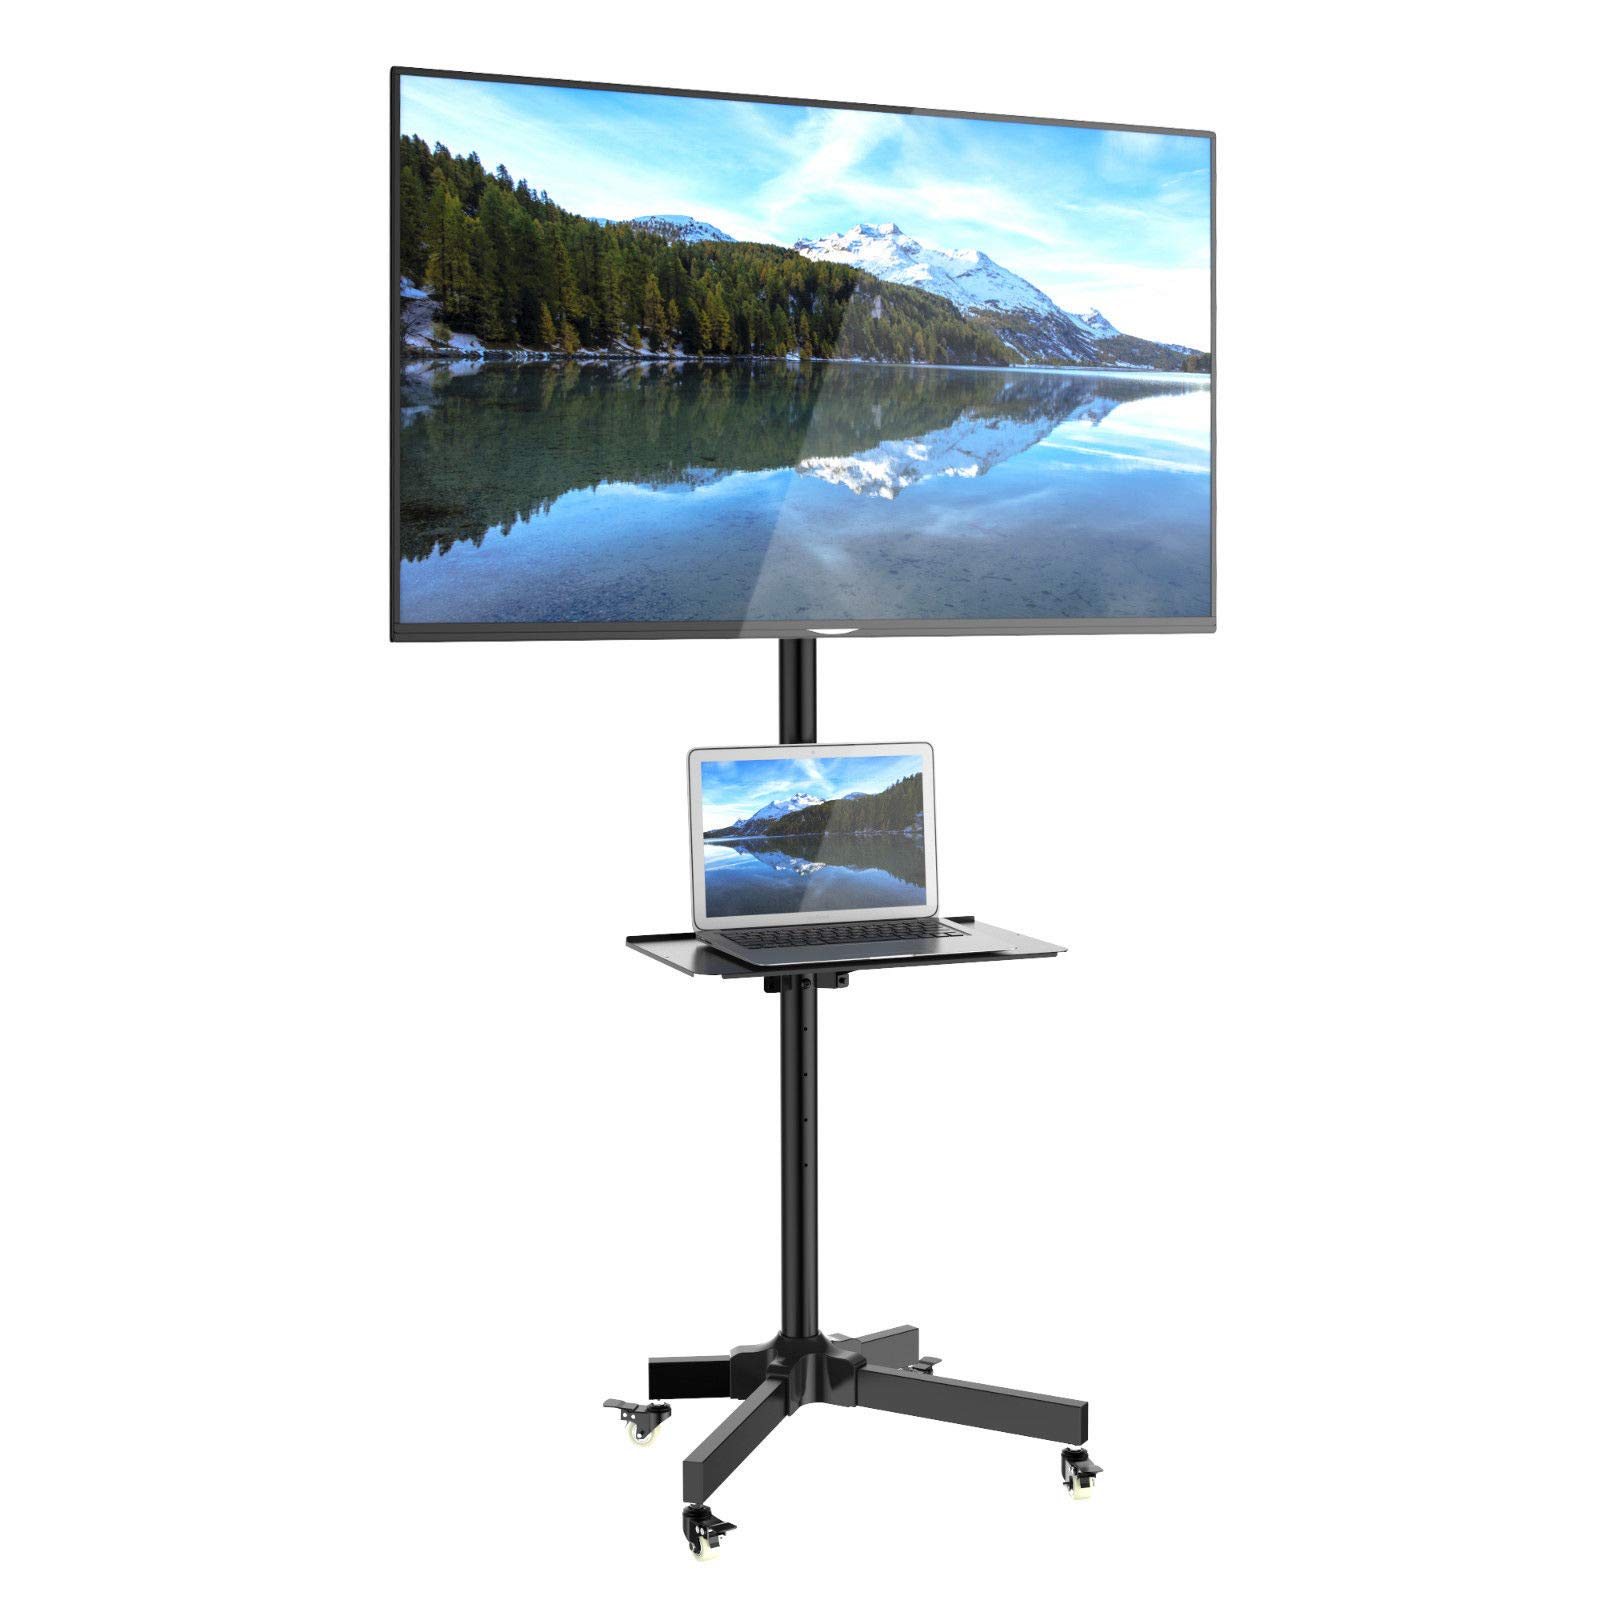 Oor Stan Plasma LCD LED nt Home Disp Display Trolley Asma LCD Mobile TV Cart Display T Floor Stand TV Cart Mount Home V Cart: Amazon.es: Electrónica